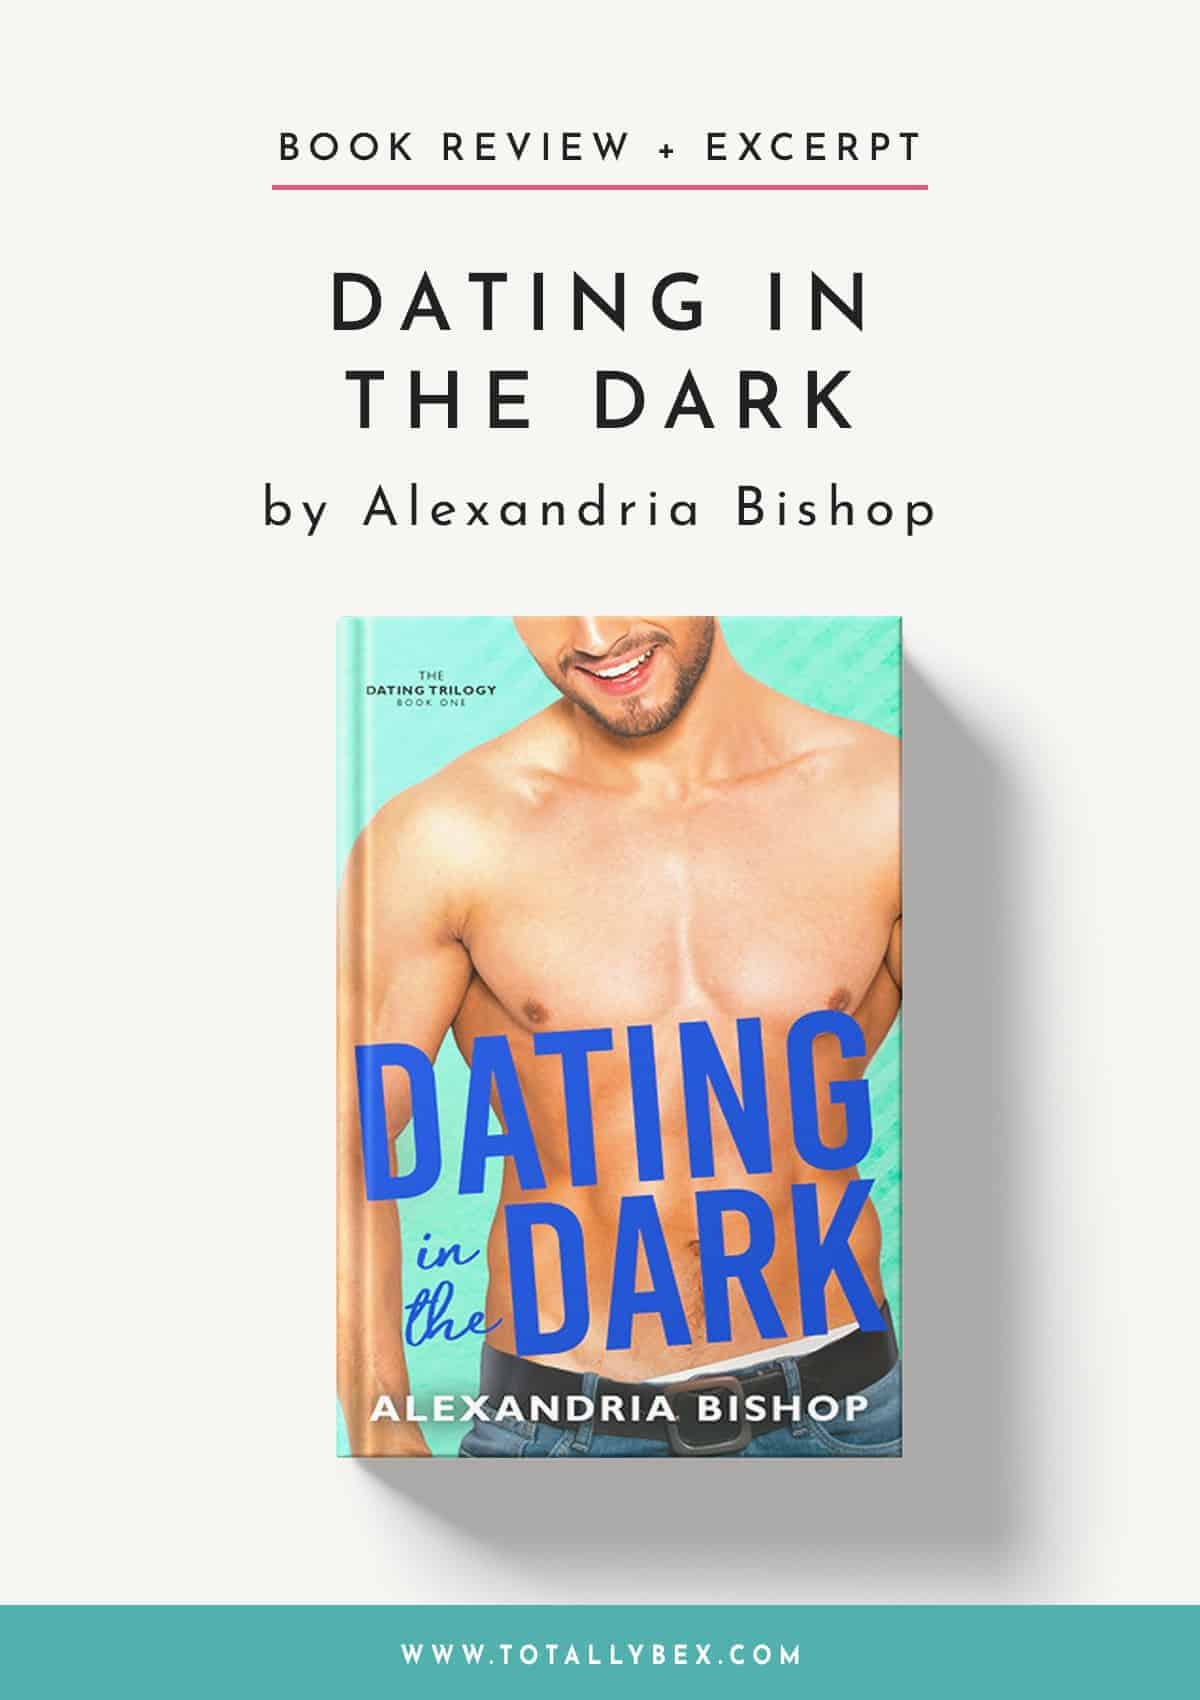 Dating in the Dark by Alexandria Bishop-Book Review+Excerpt